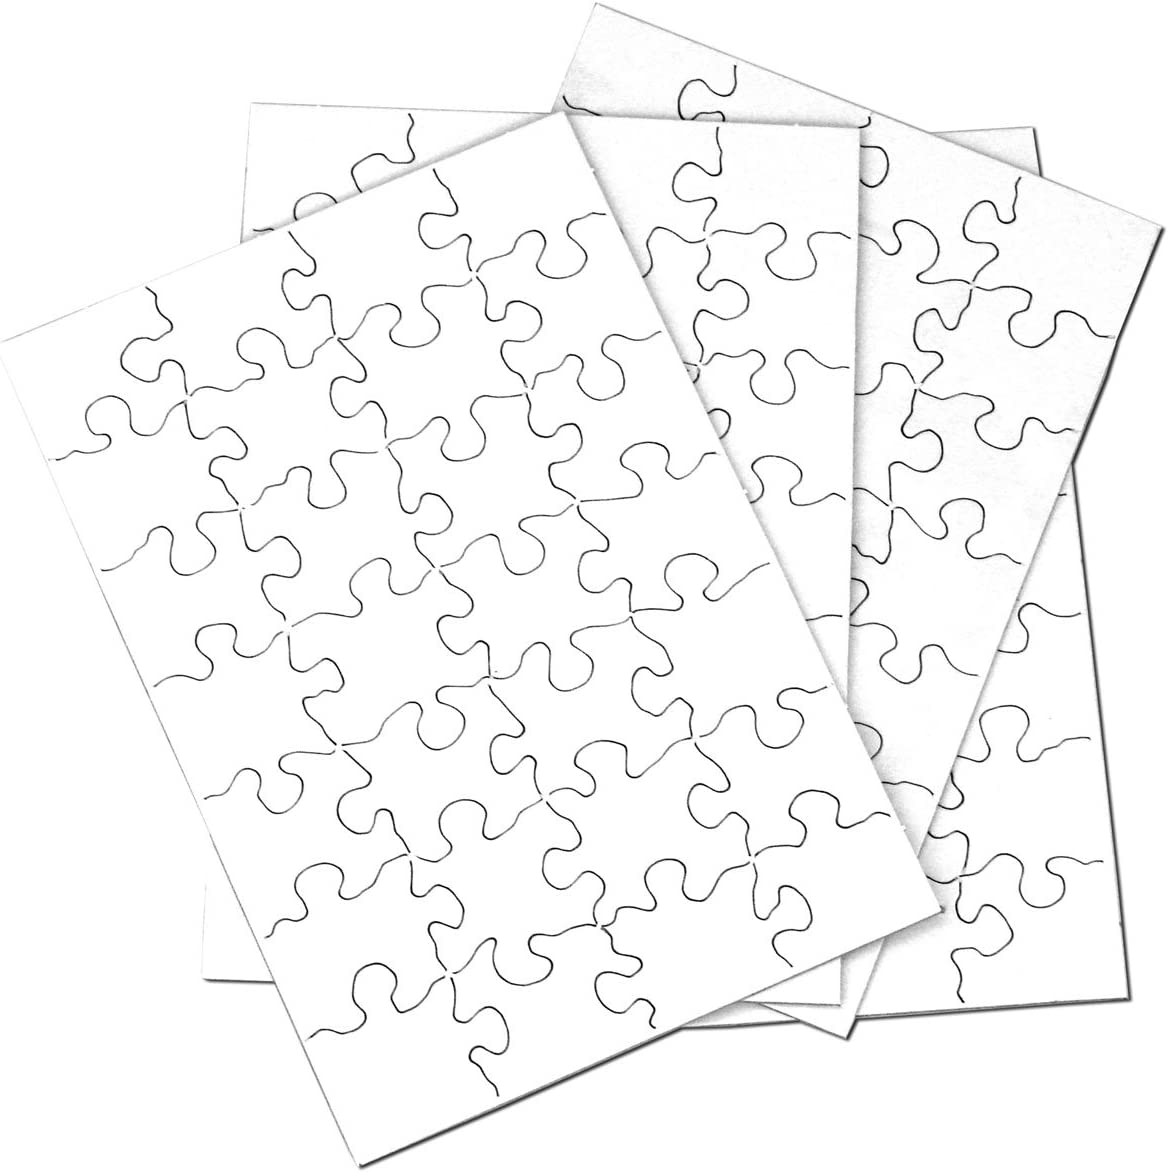 Inovart Puzzle-It low-pricing Blank Puzzle SEAL limited product